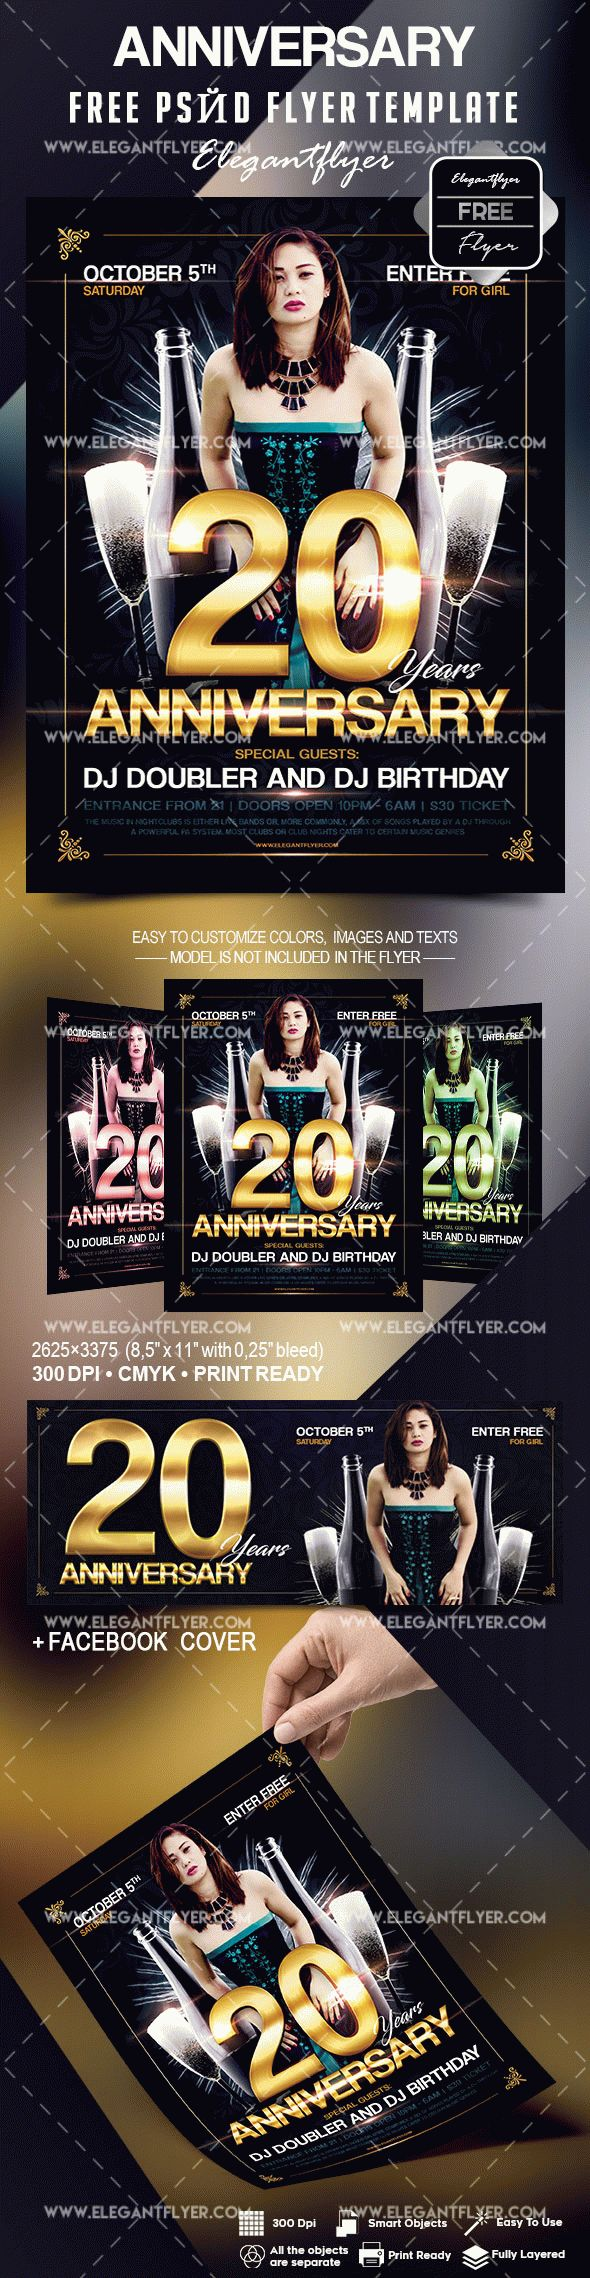 Anniversary Flyers Template Free